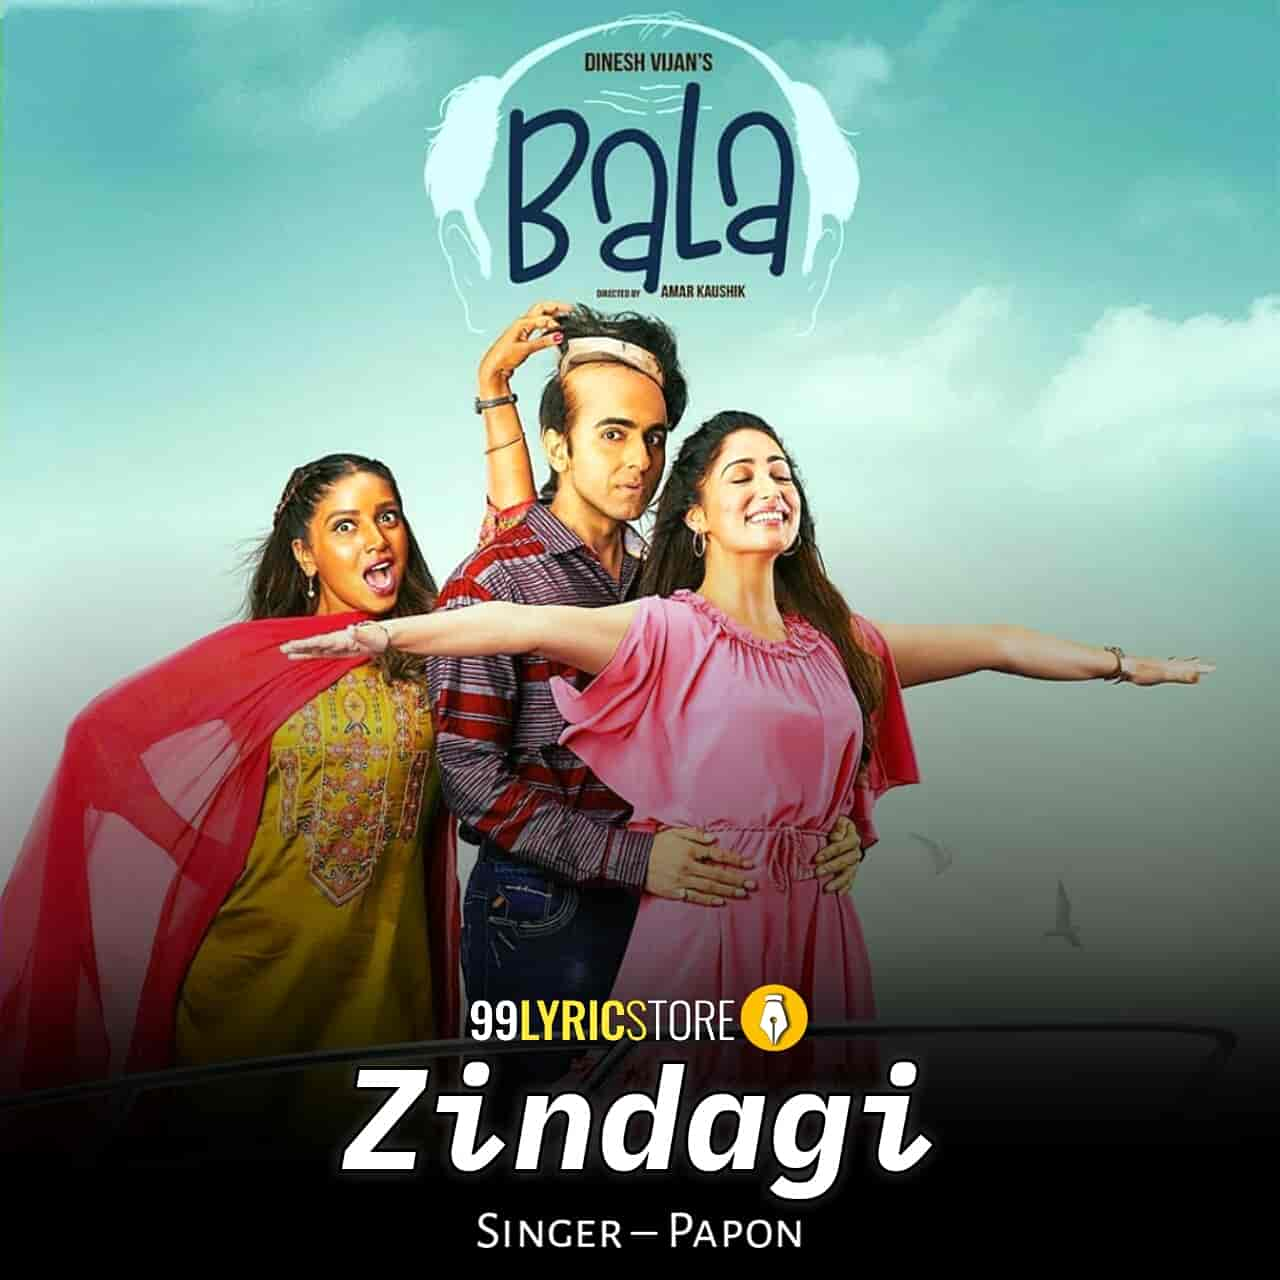 Zindagi Bala Movie Song Images sung by Papon